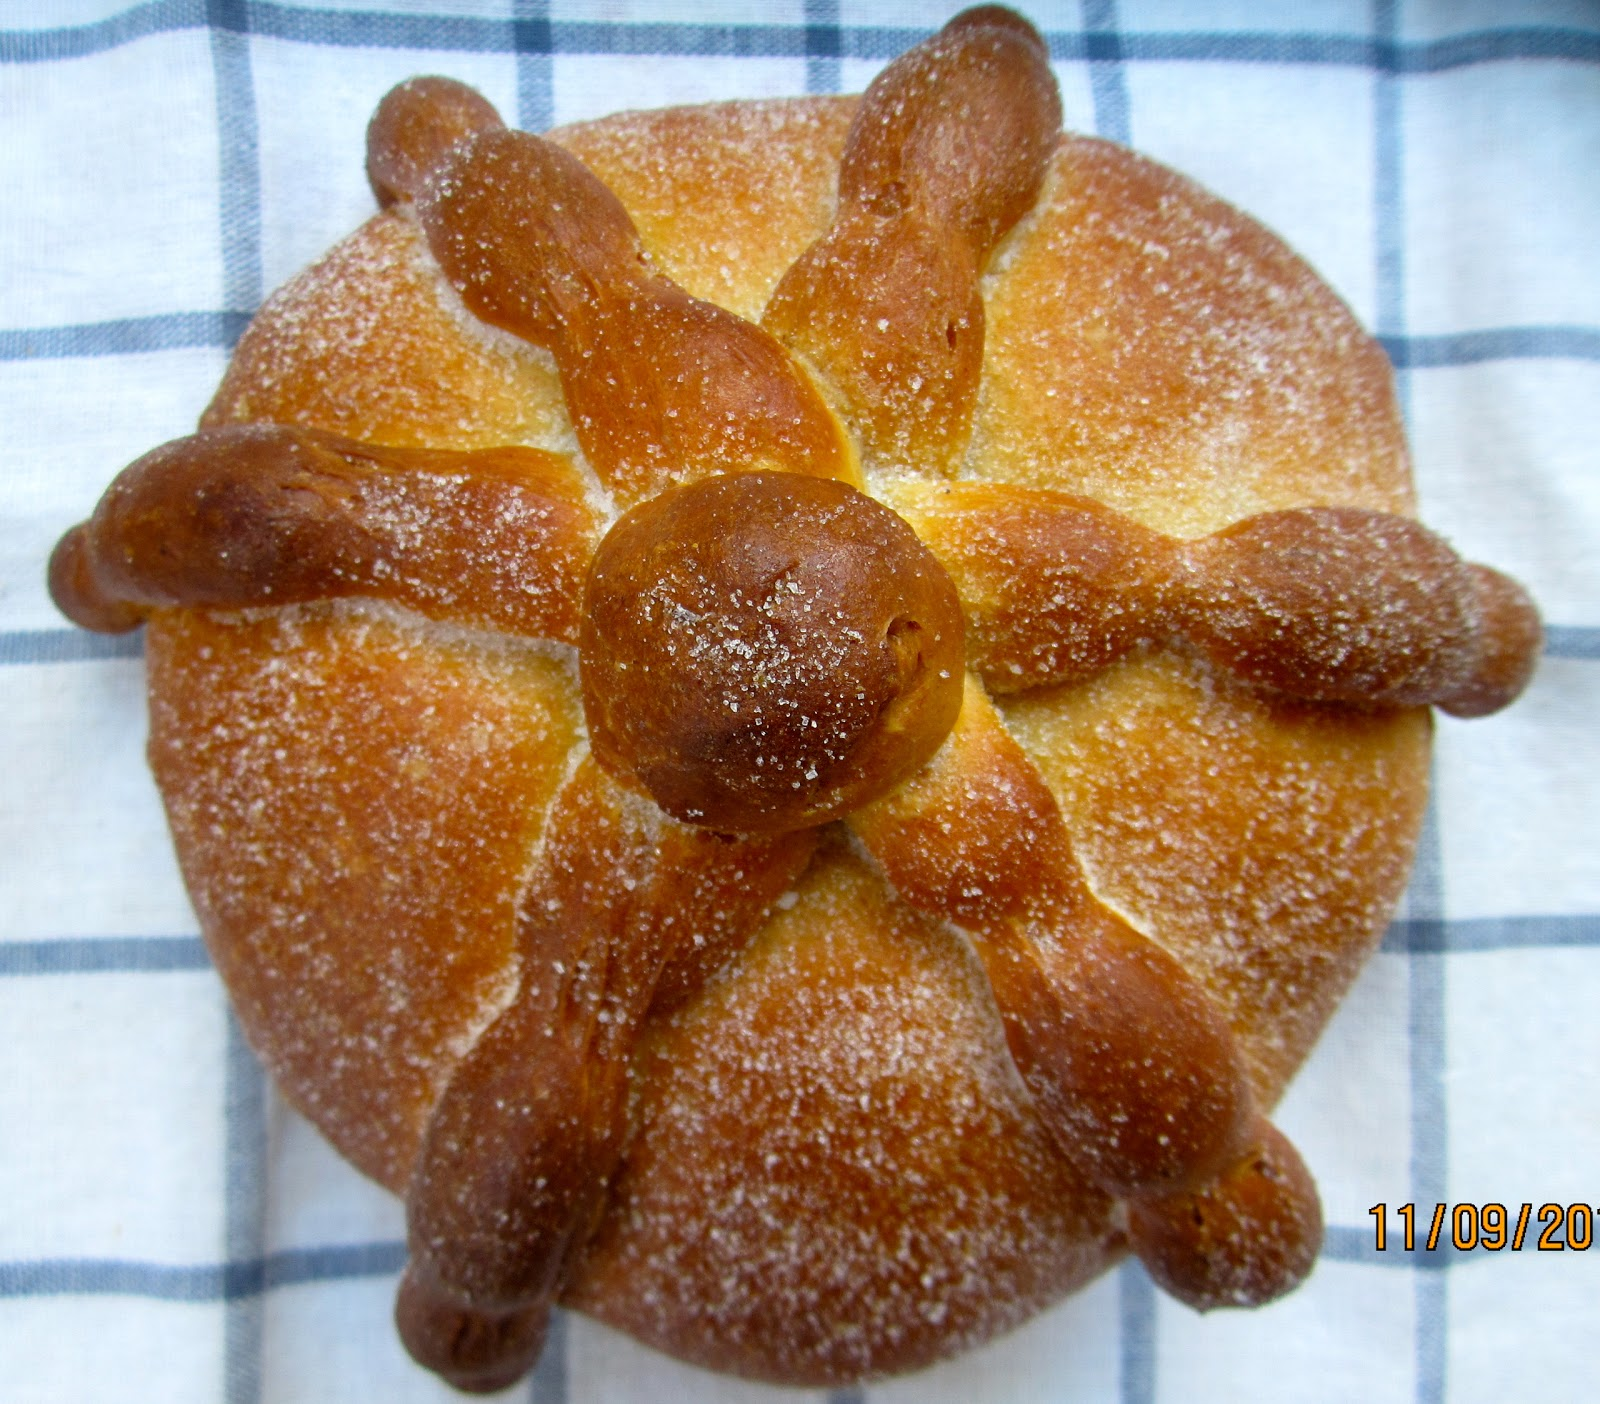 Deutsche Kuche Bread Brot And Meer Pan De Muerto Mexikanisches Totenbrot